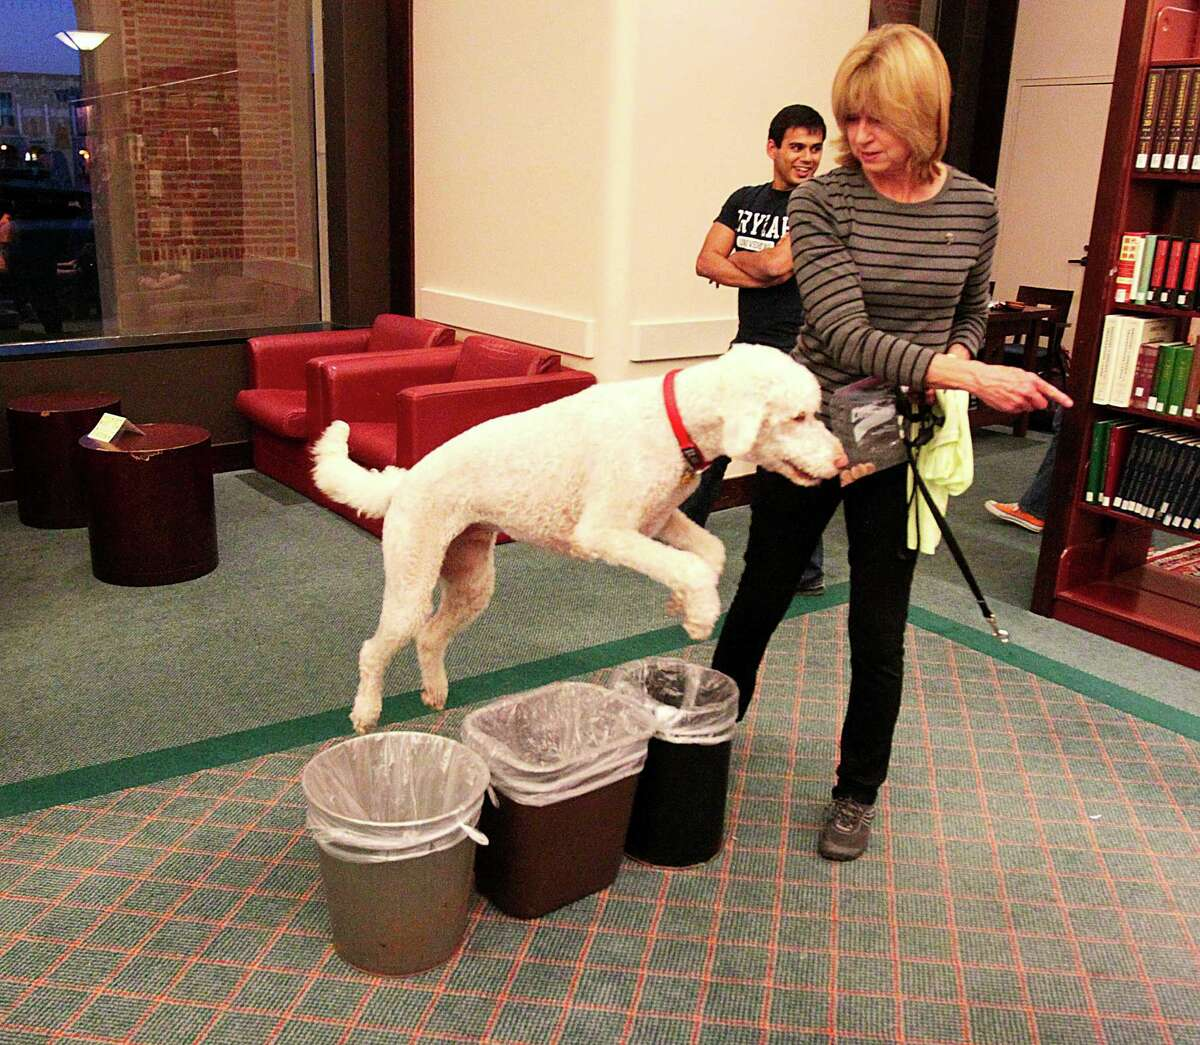 Owner Janice Hartrick has her dog Rudy jumping trash cans to show off for the students at Rice University during a visit from Faithful Paws a pet therapy group. Rice University students looked to pet therapy to relieve the stress of studying for finals, Thursday December 6, 2012 at Rice University's Fondren Library.